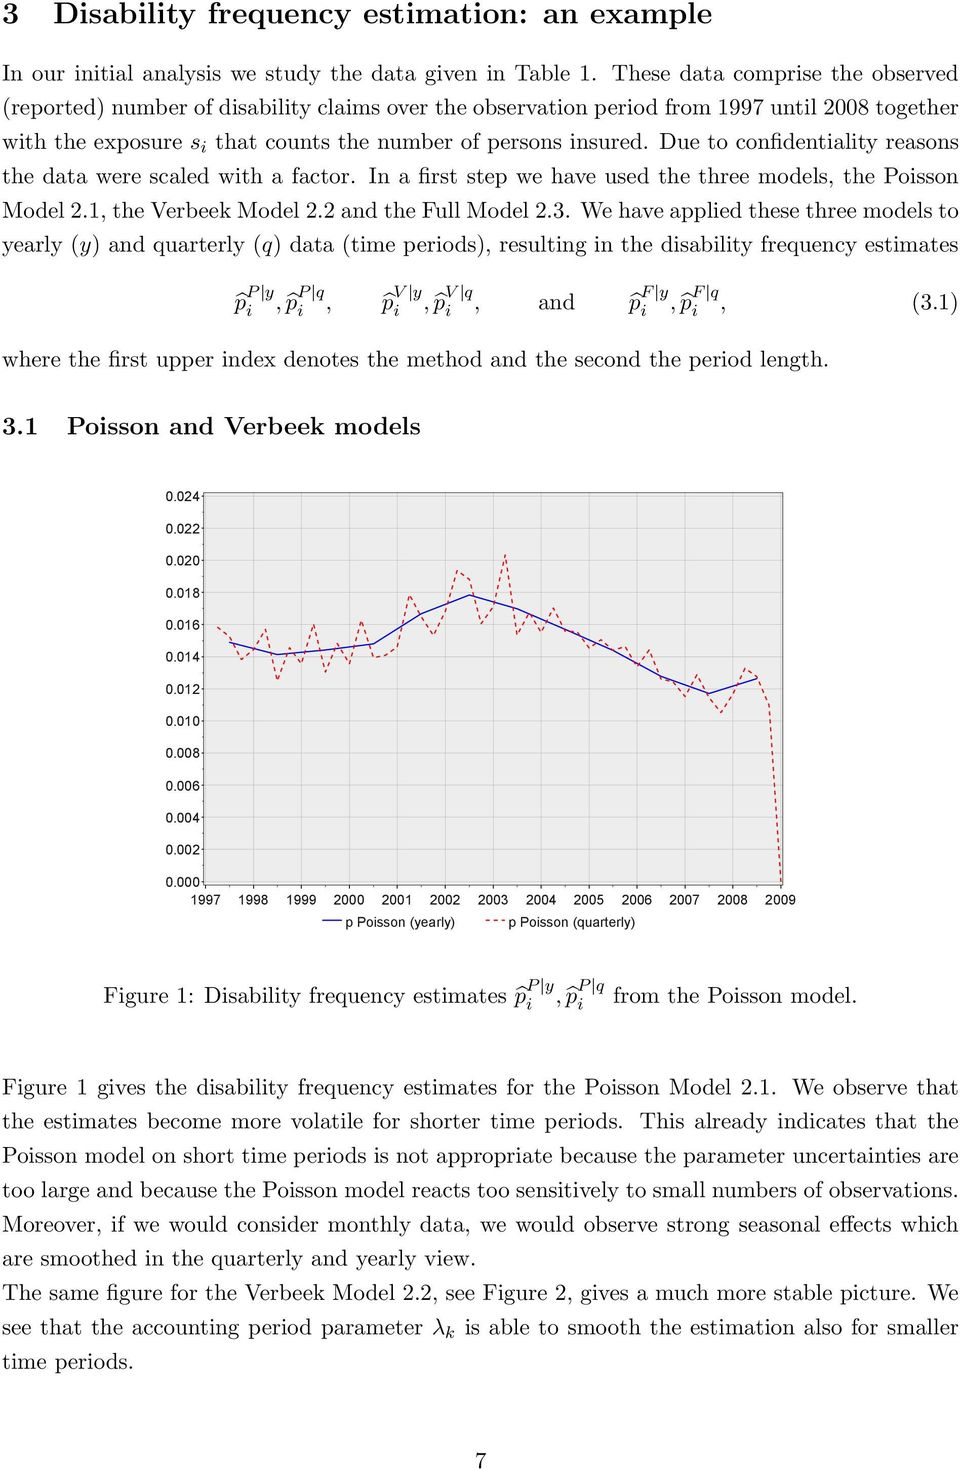 Due to confdentalty reasons the data were scaled wth a factor. In a frst step we have used the three models, the Posson Model 2.1, the Verbee Model 2.2 and the Full Model 2.3.